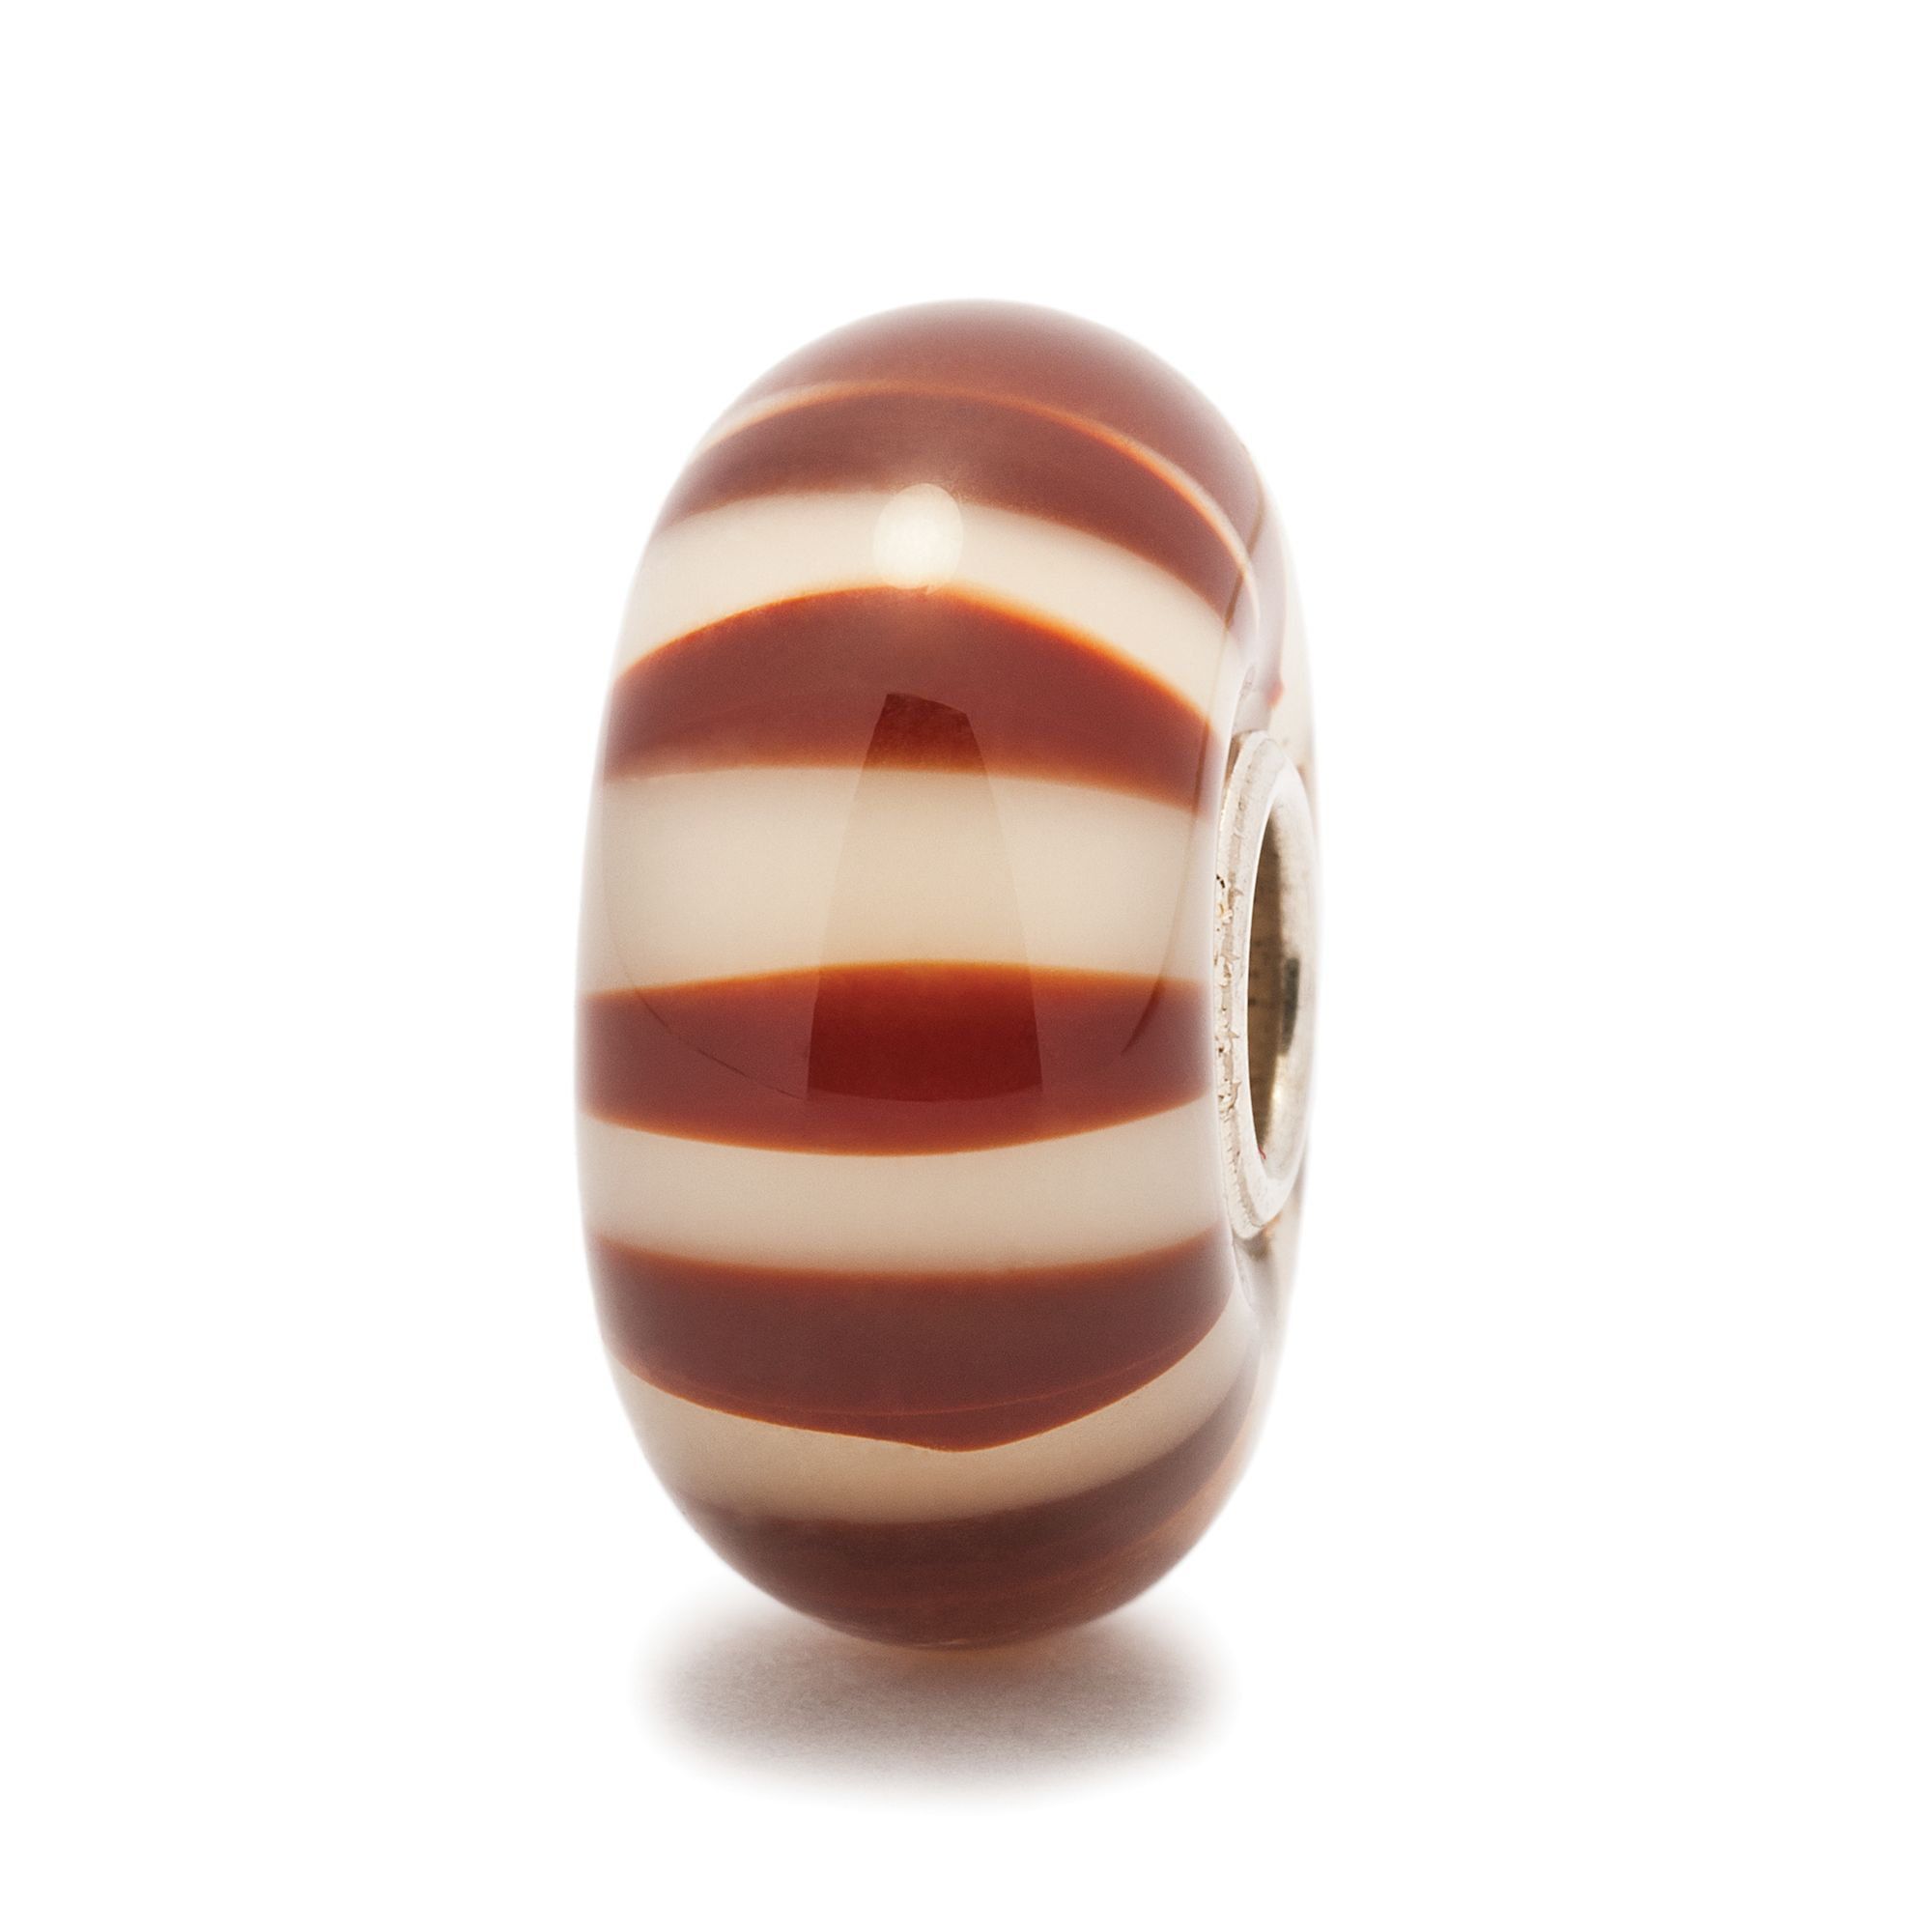 Stripe glass charm bead